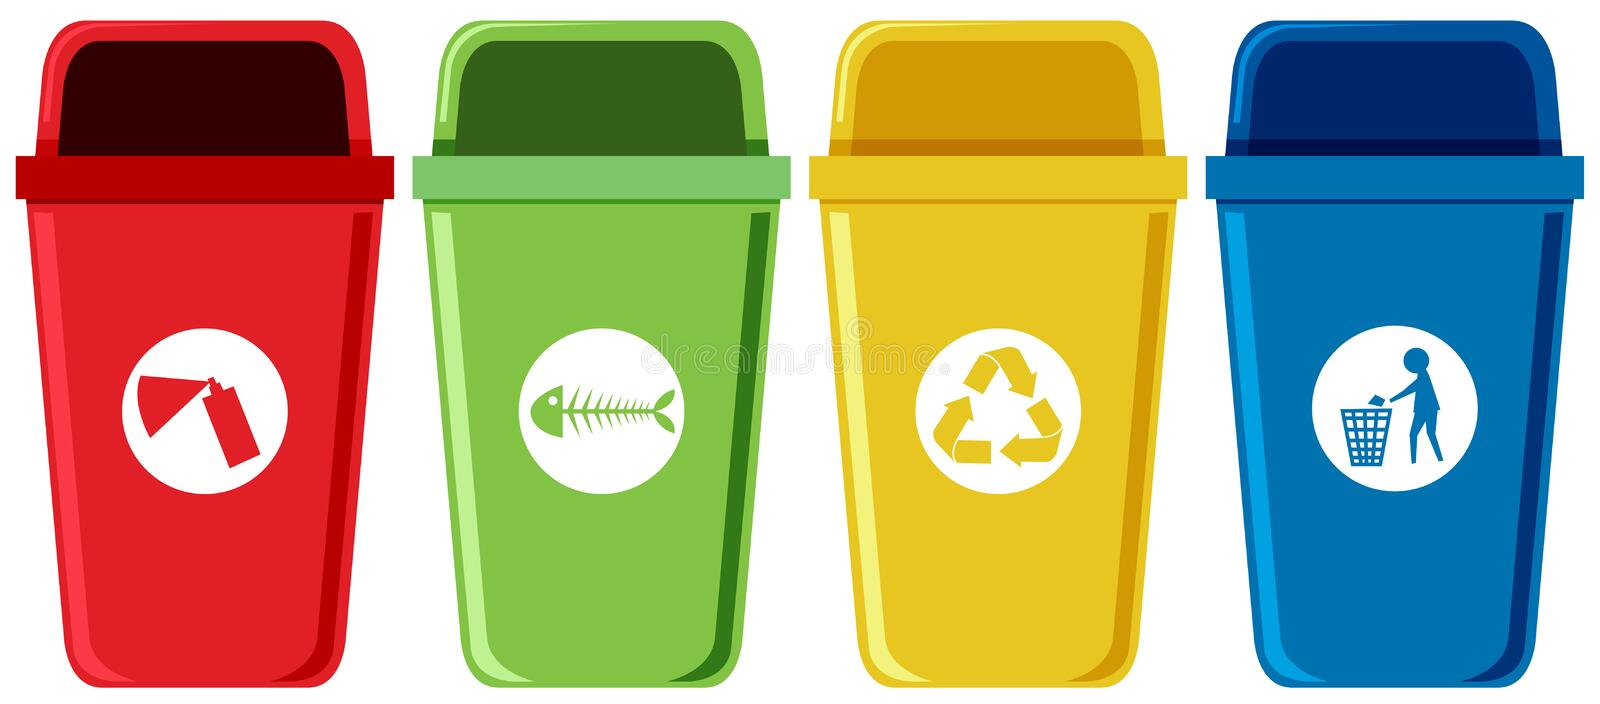 Set of recycling bins stock illustration